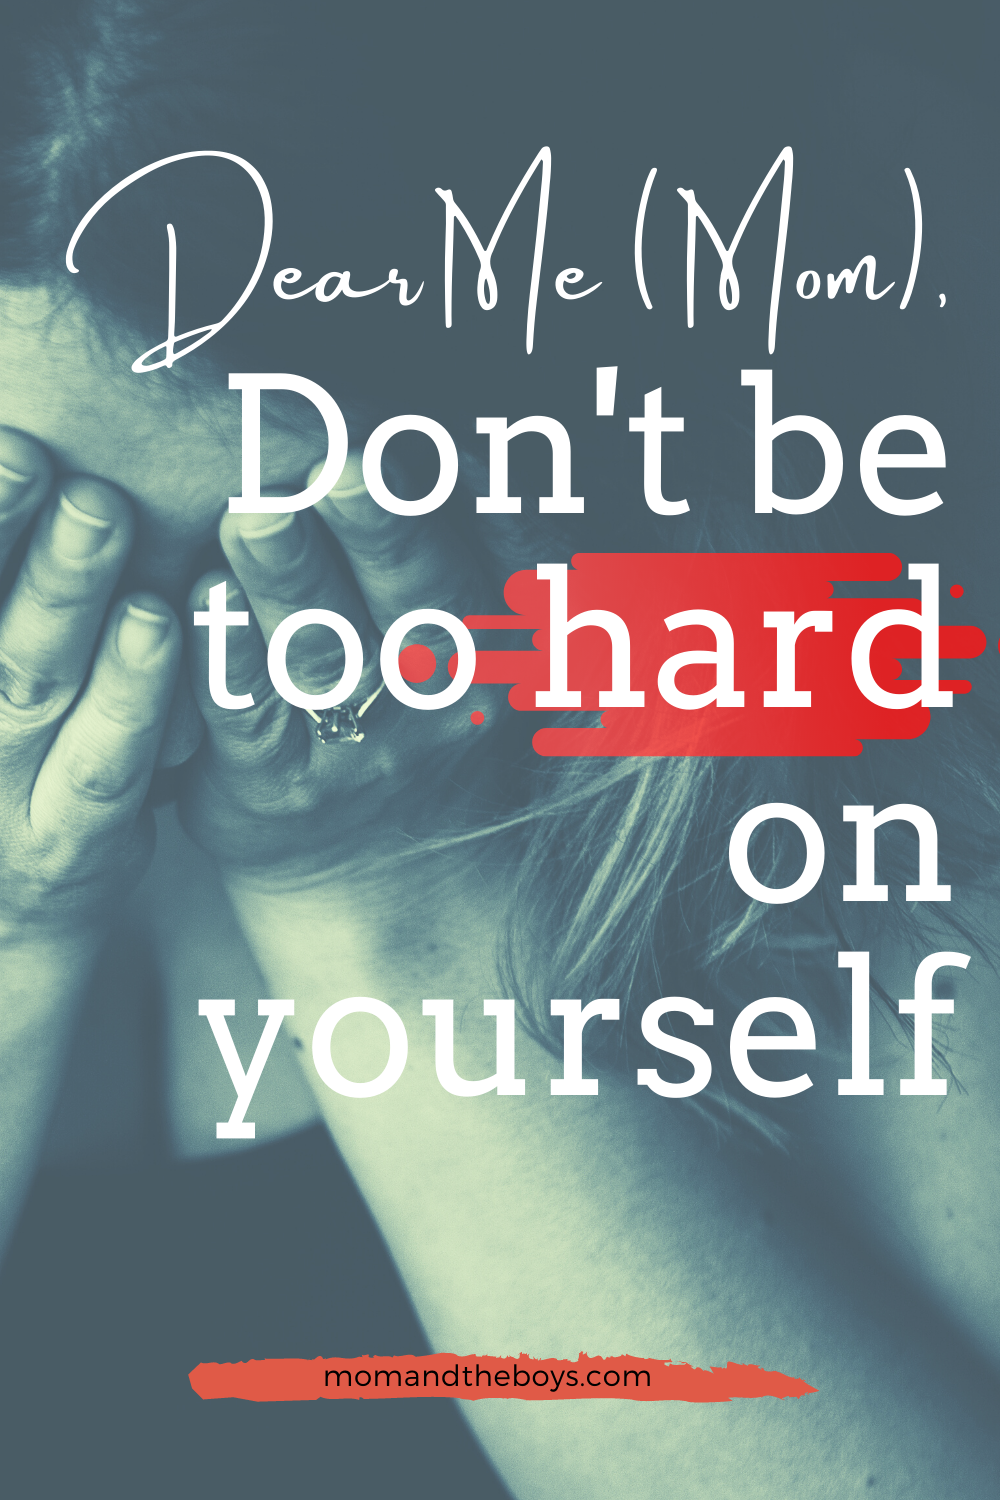 Dear Me (Mom), Don't Be Too Hard On Yourself